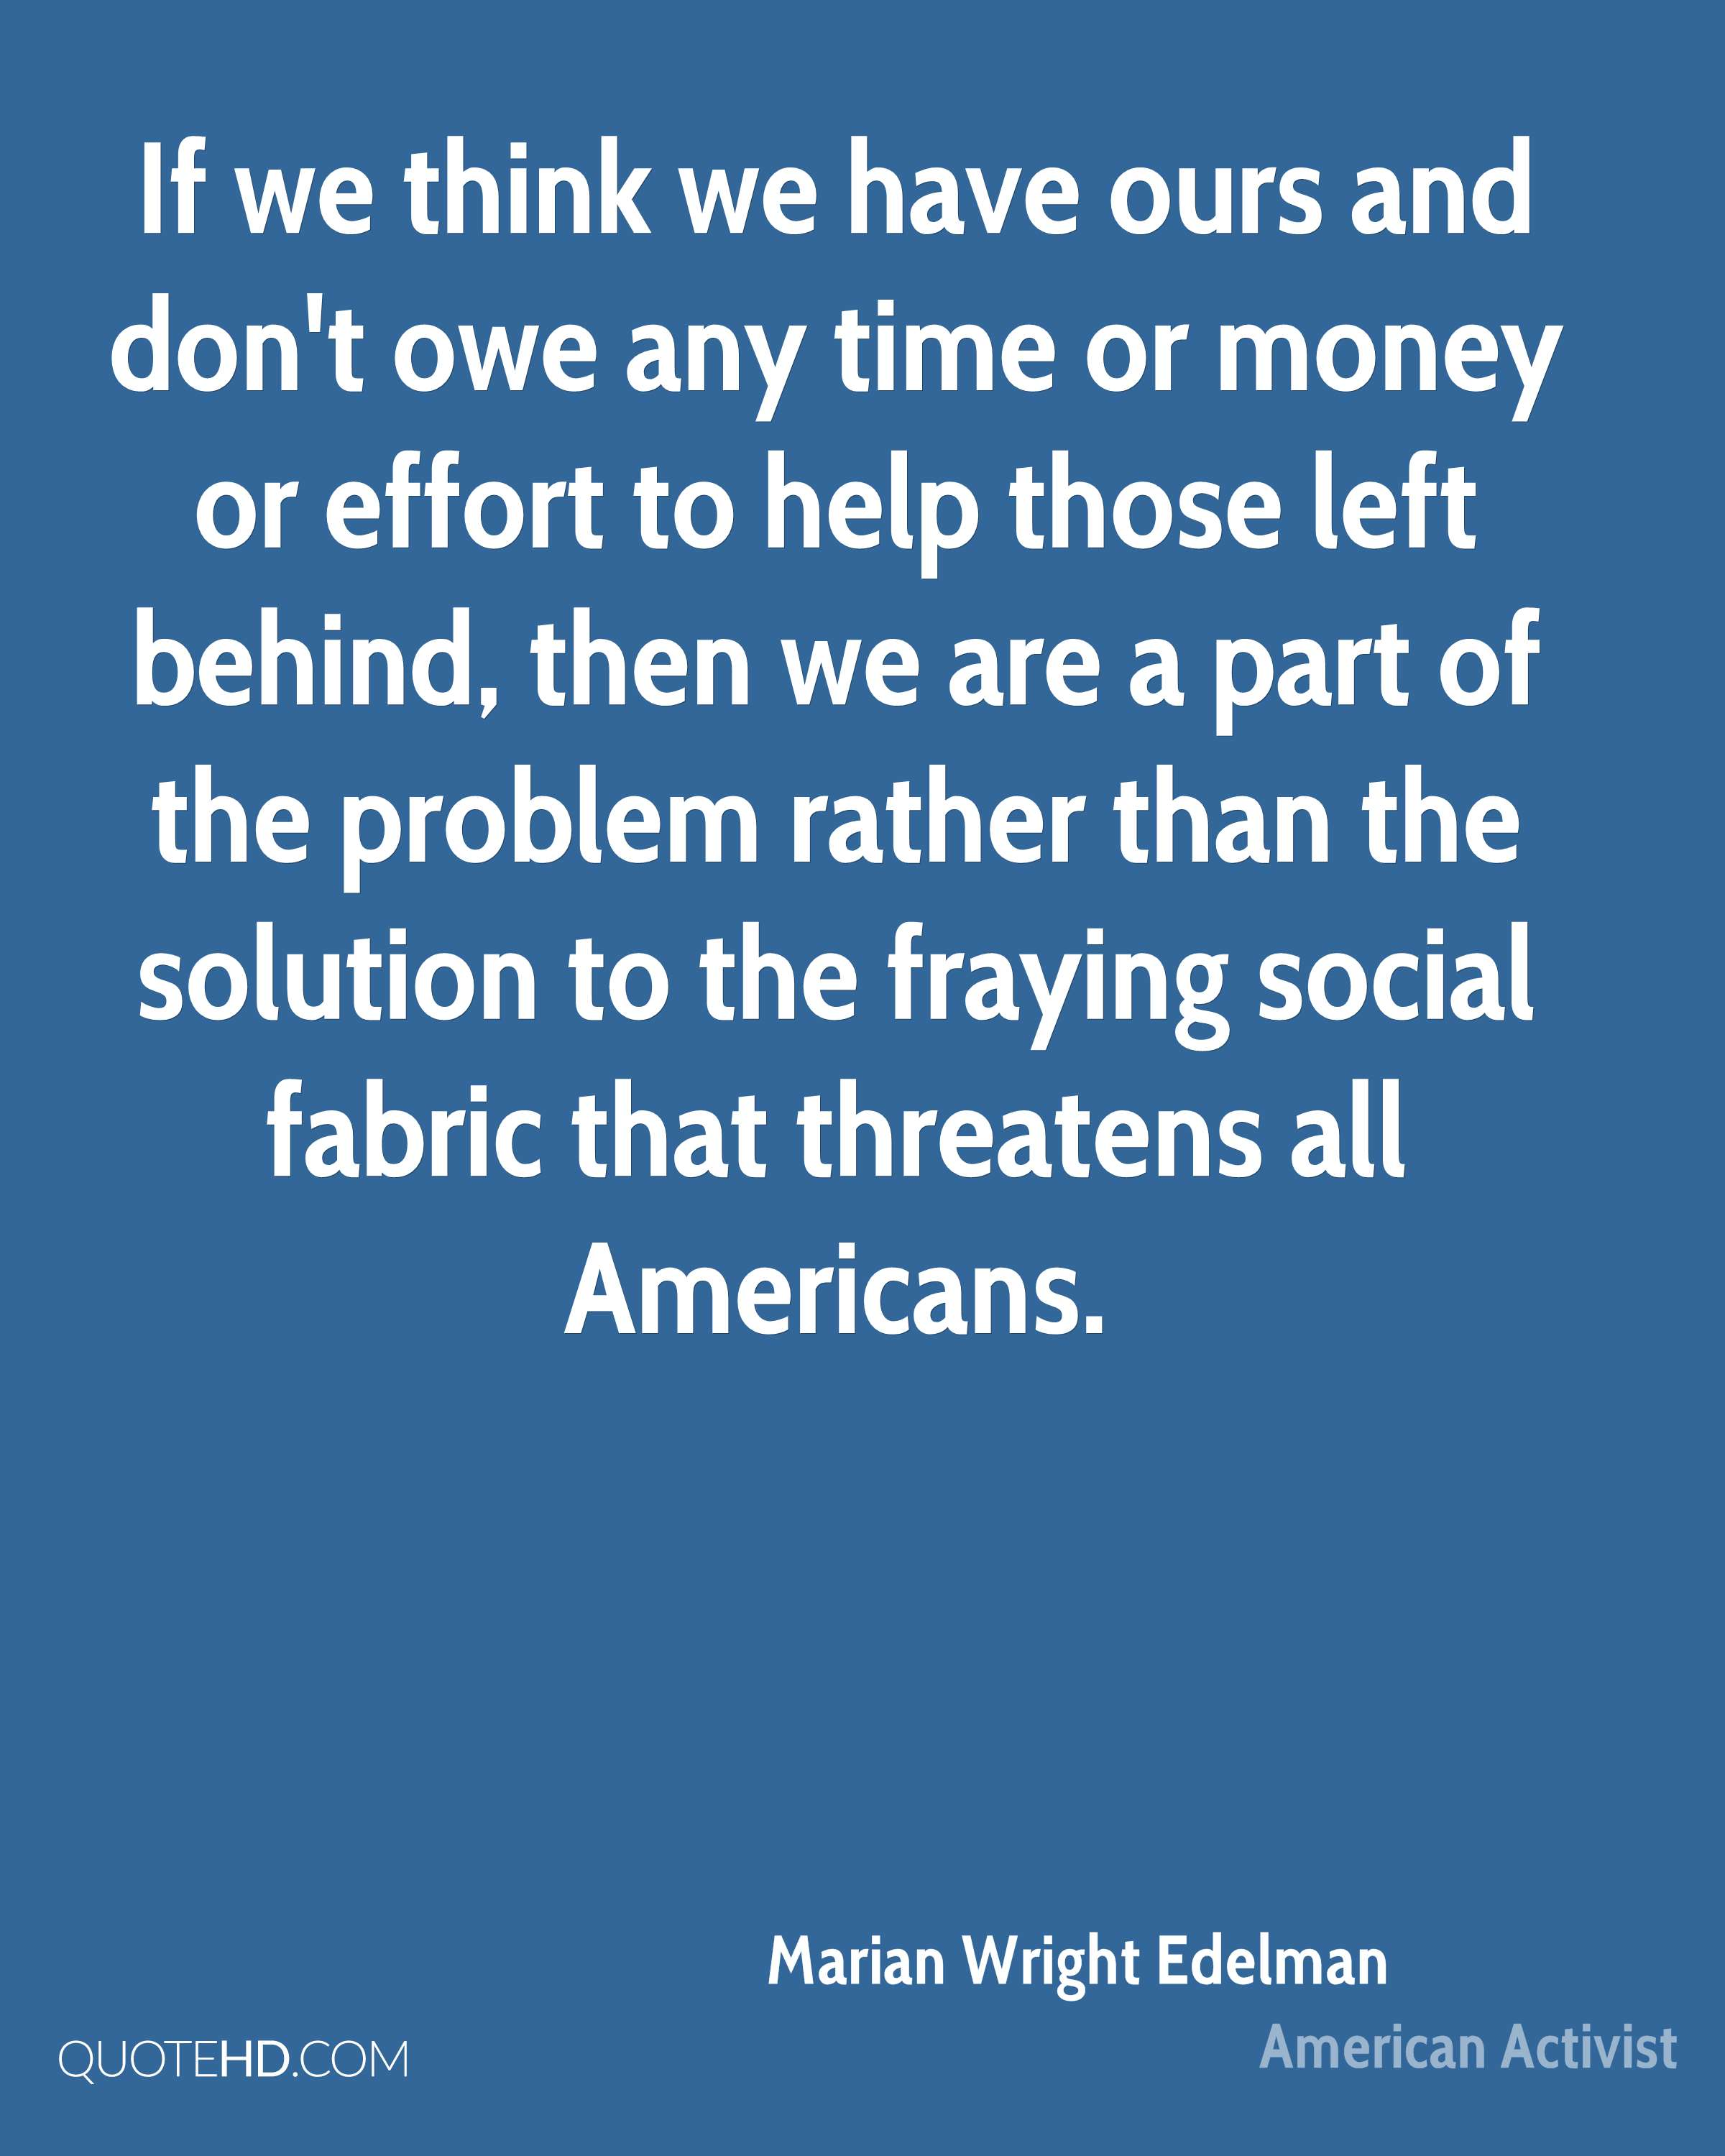 If we think we have ours and don't owe any time or money or effort to help those left behind, then we are a part of the problem rather than the solution to the fraying social fabric that threatens all Americans.